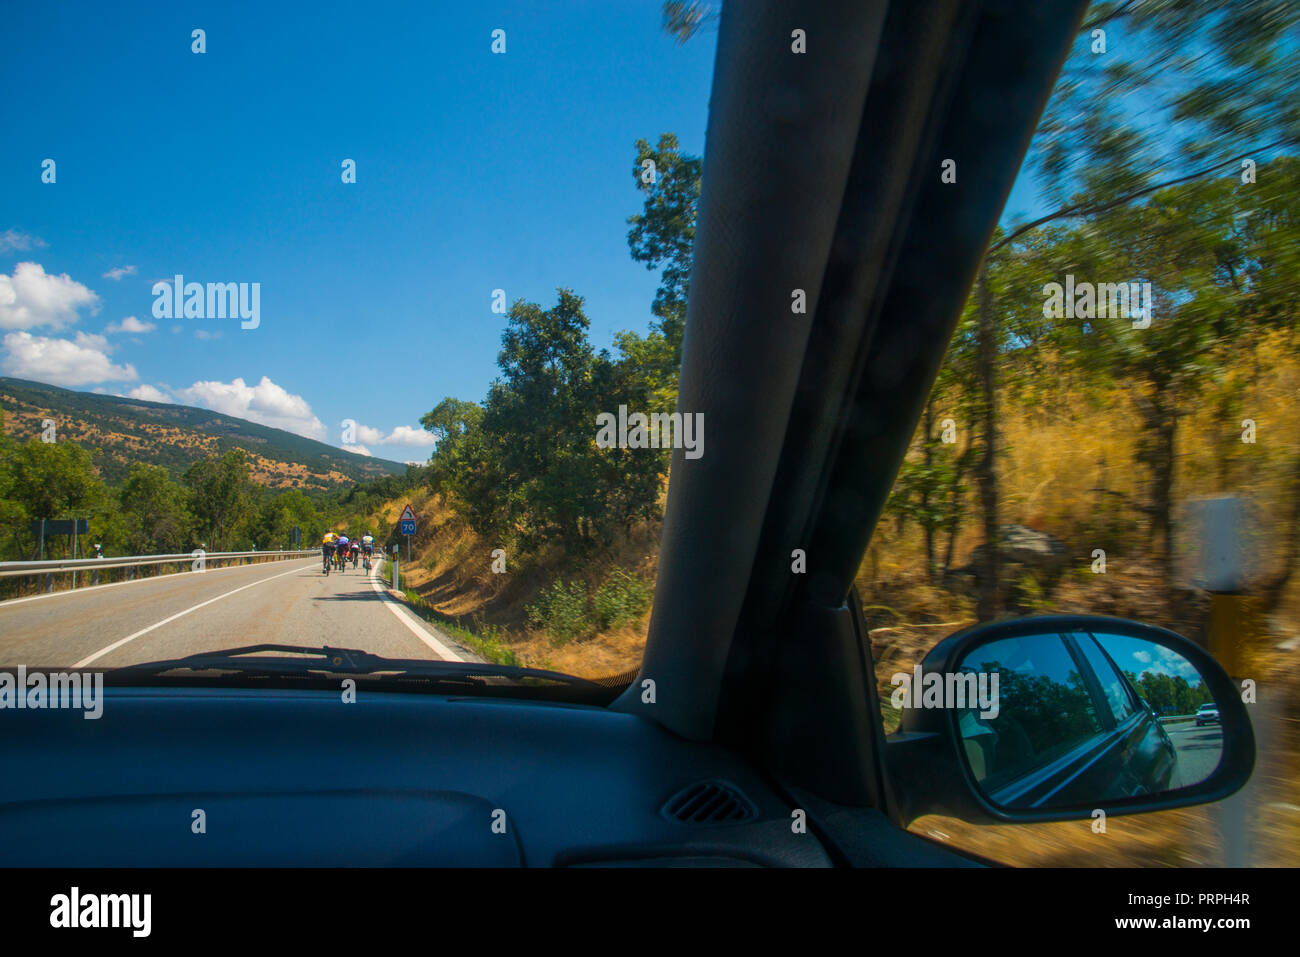 Group of ciclists traveling along a byway viewed from inside a car. - Stock Image